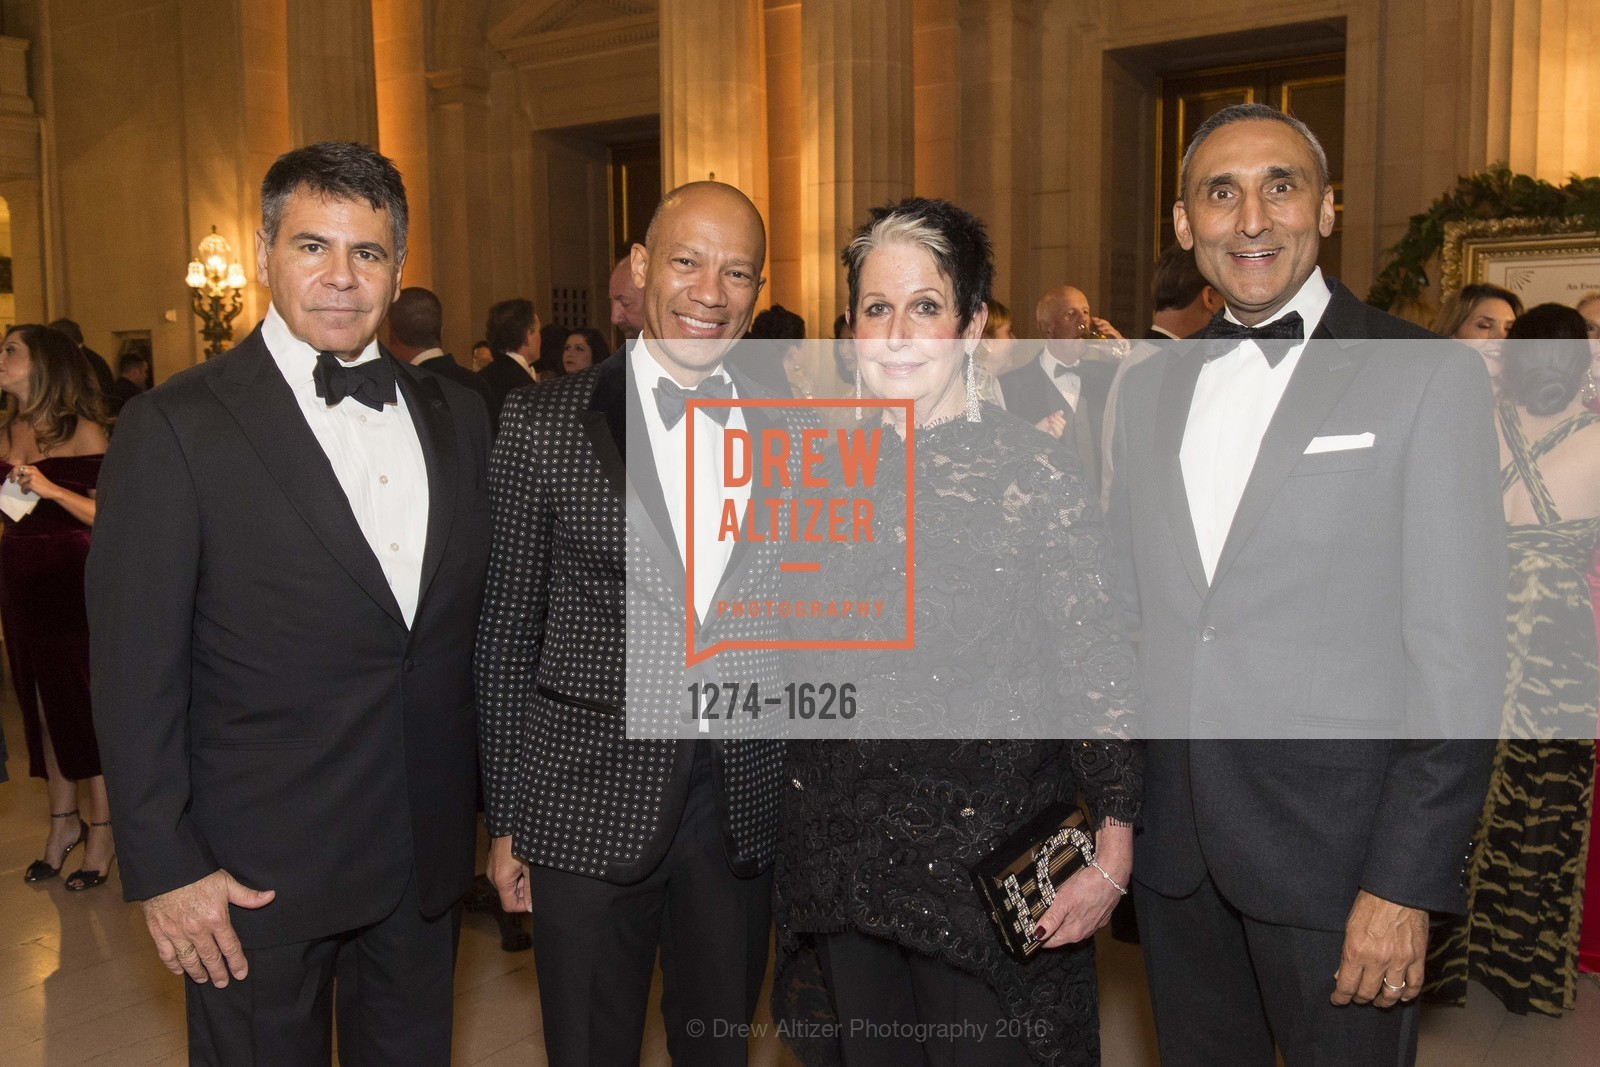 Gary Garabedian, Ken McNeely, Karen Kubin, Inder Dhillon, Photo #1274-1626